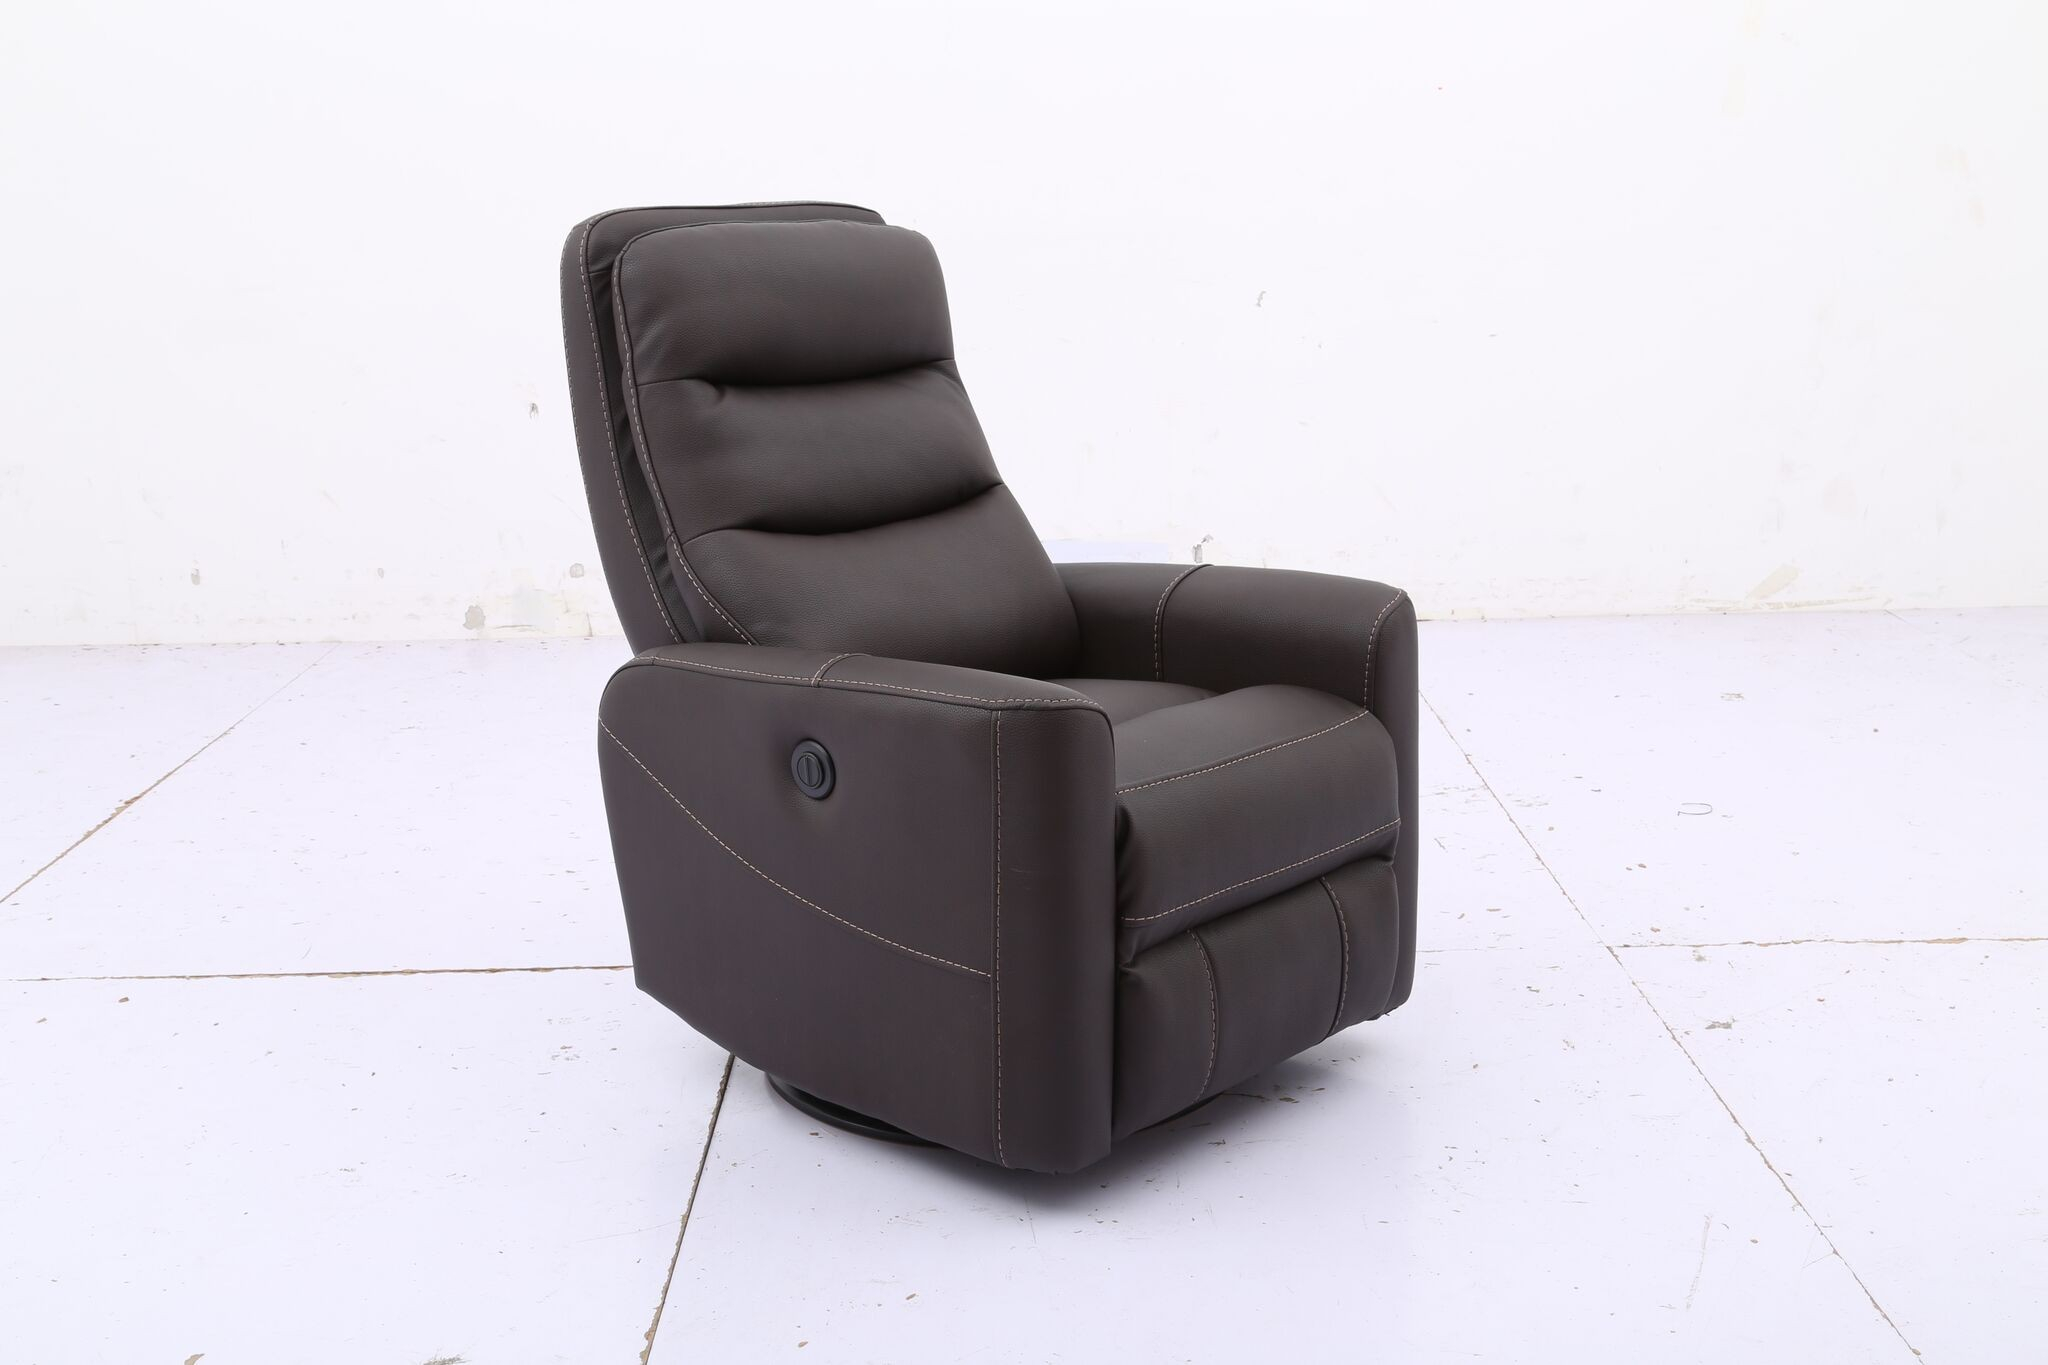 Hercules  Chocolate  Swivel Power Recliner Regarding Hercules Oyster Swivel Glider Recliners (Image 7 of 20)